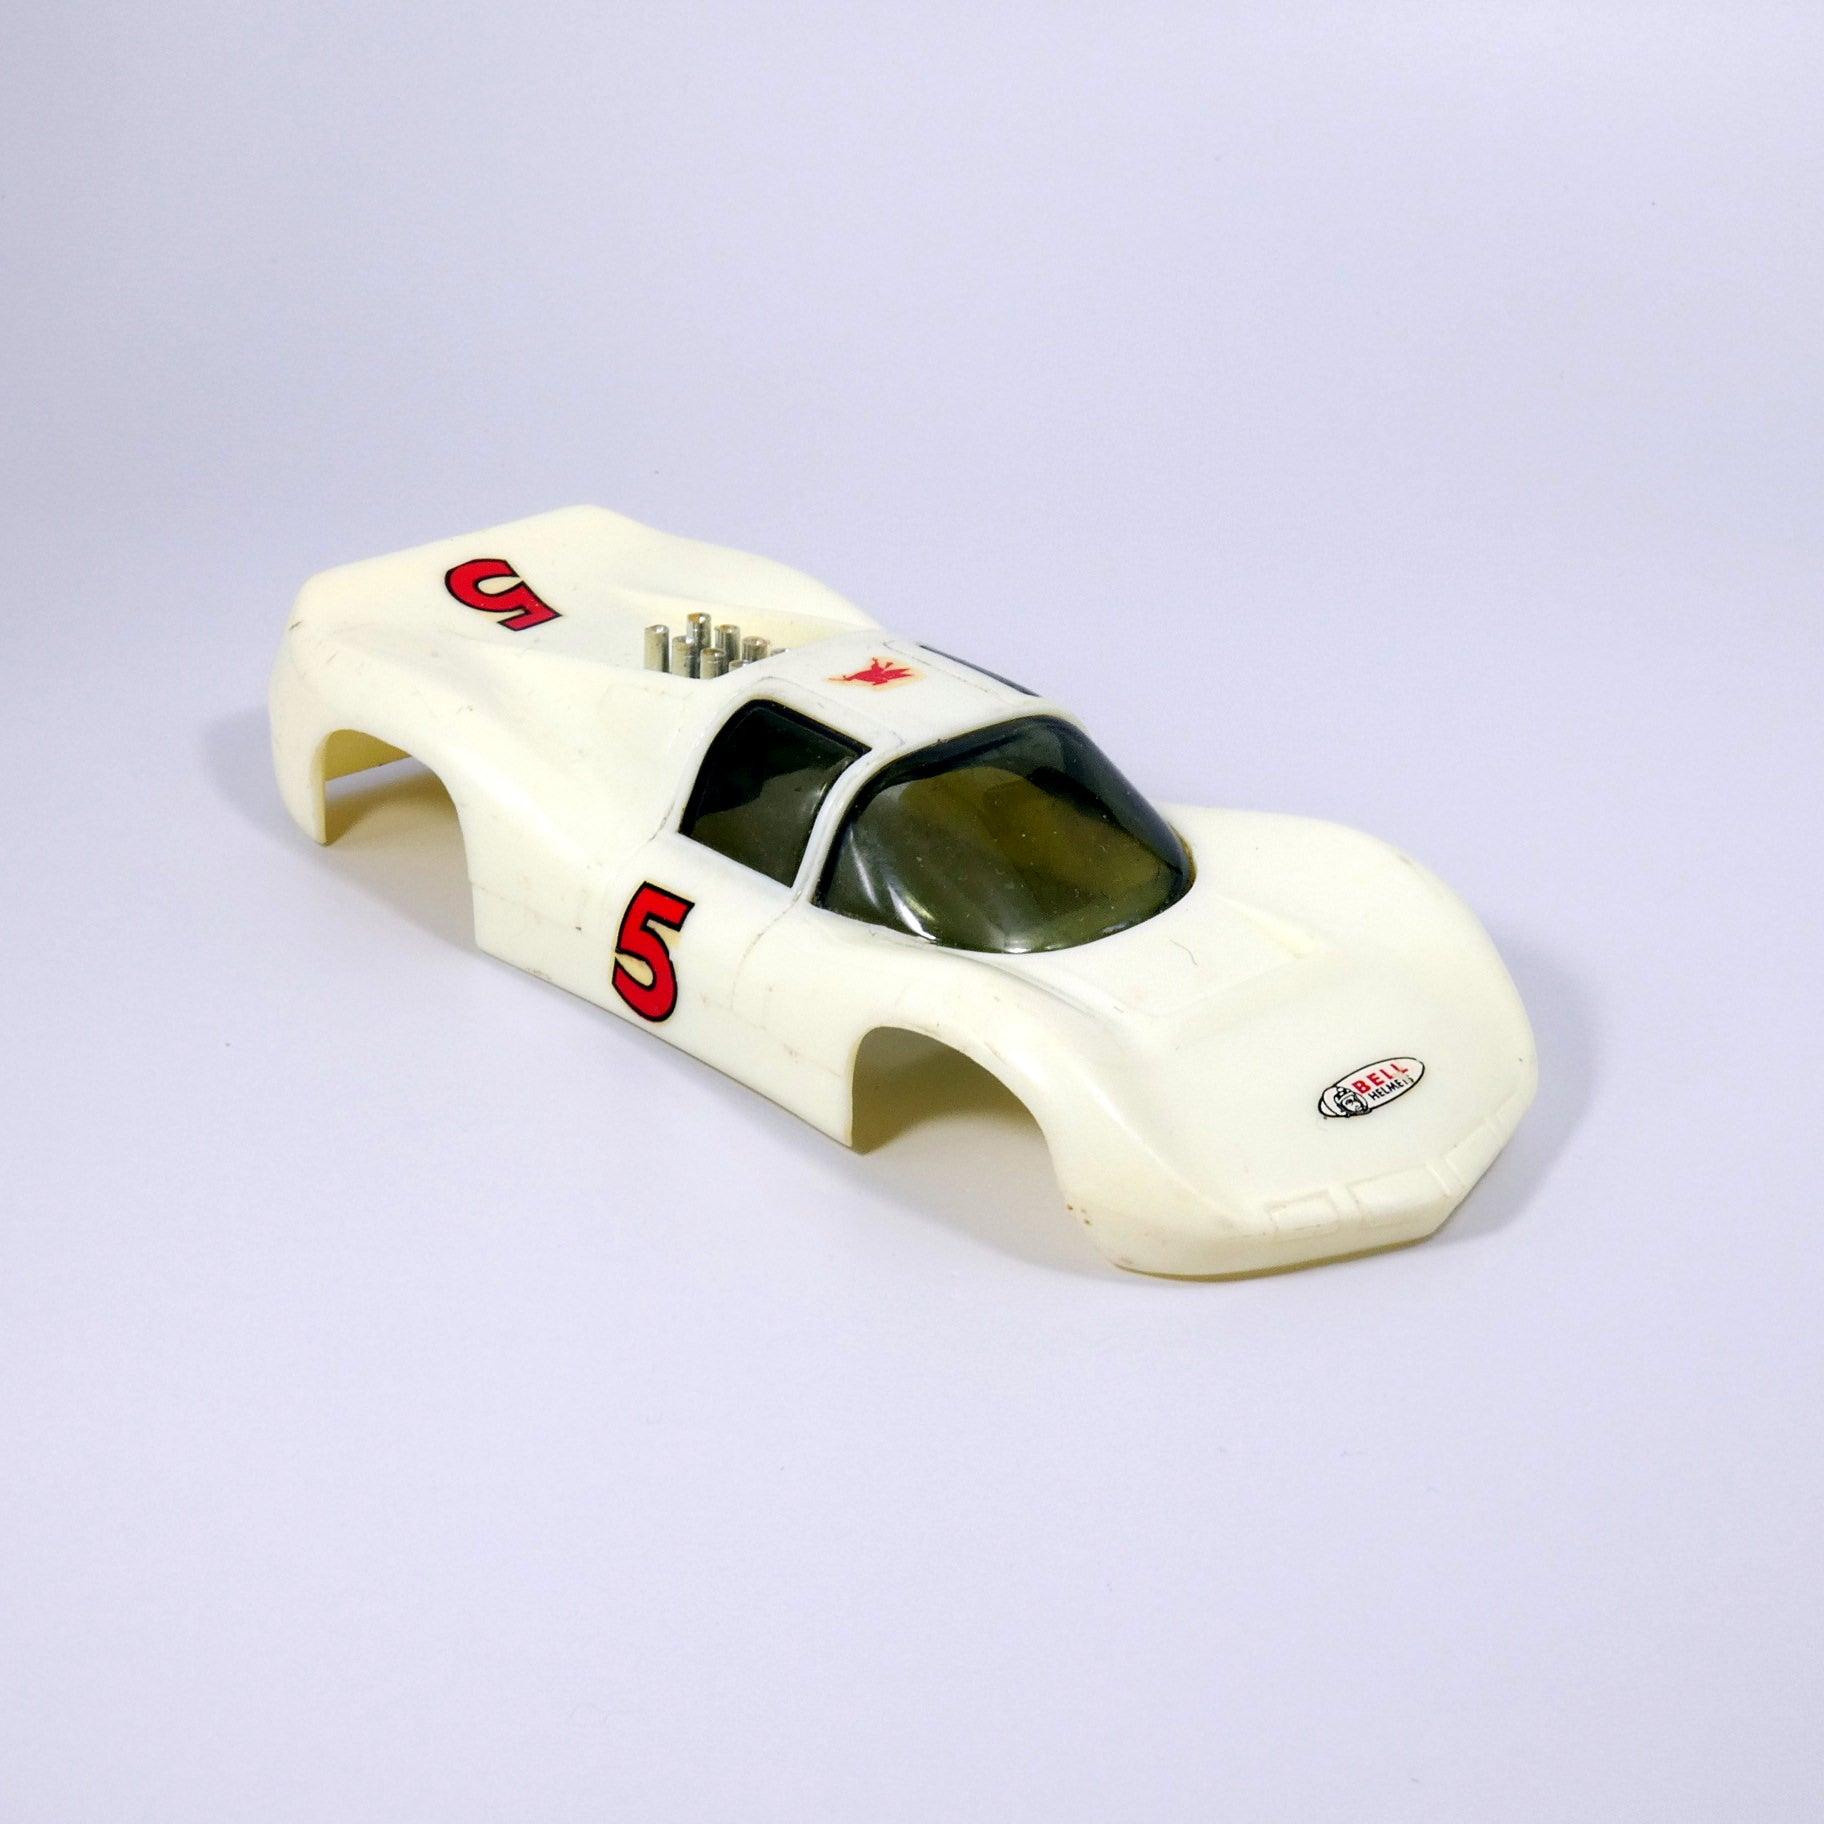 Vintage Slot Car - 1/32 1967 Chaparral 2D Daytona Coupe by Eldon